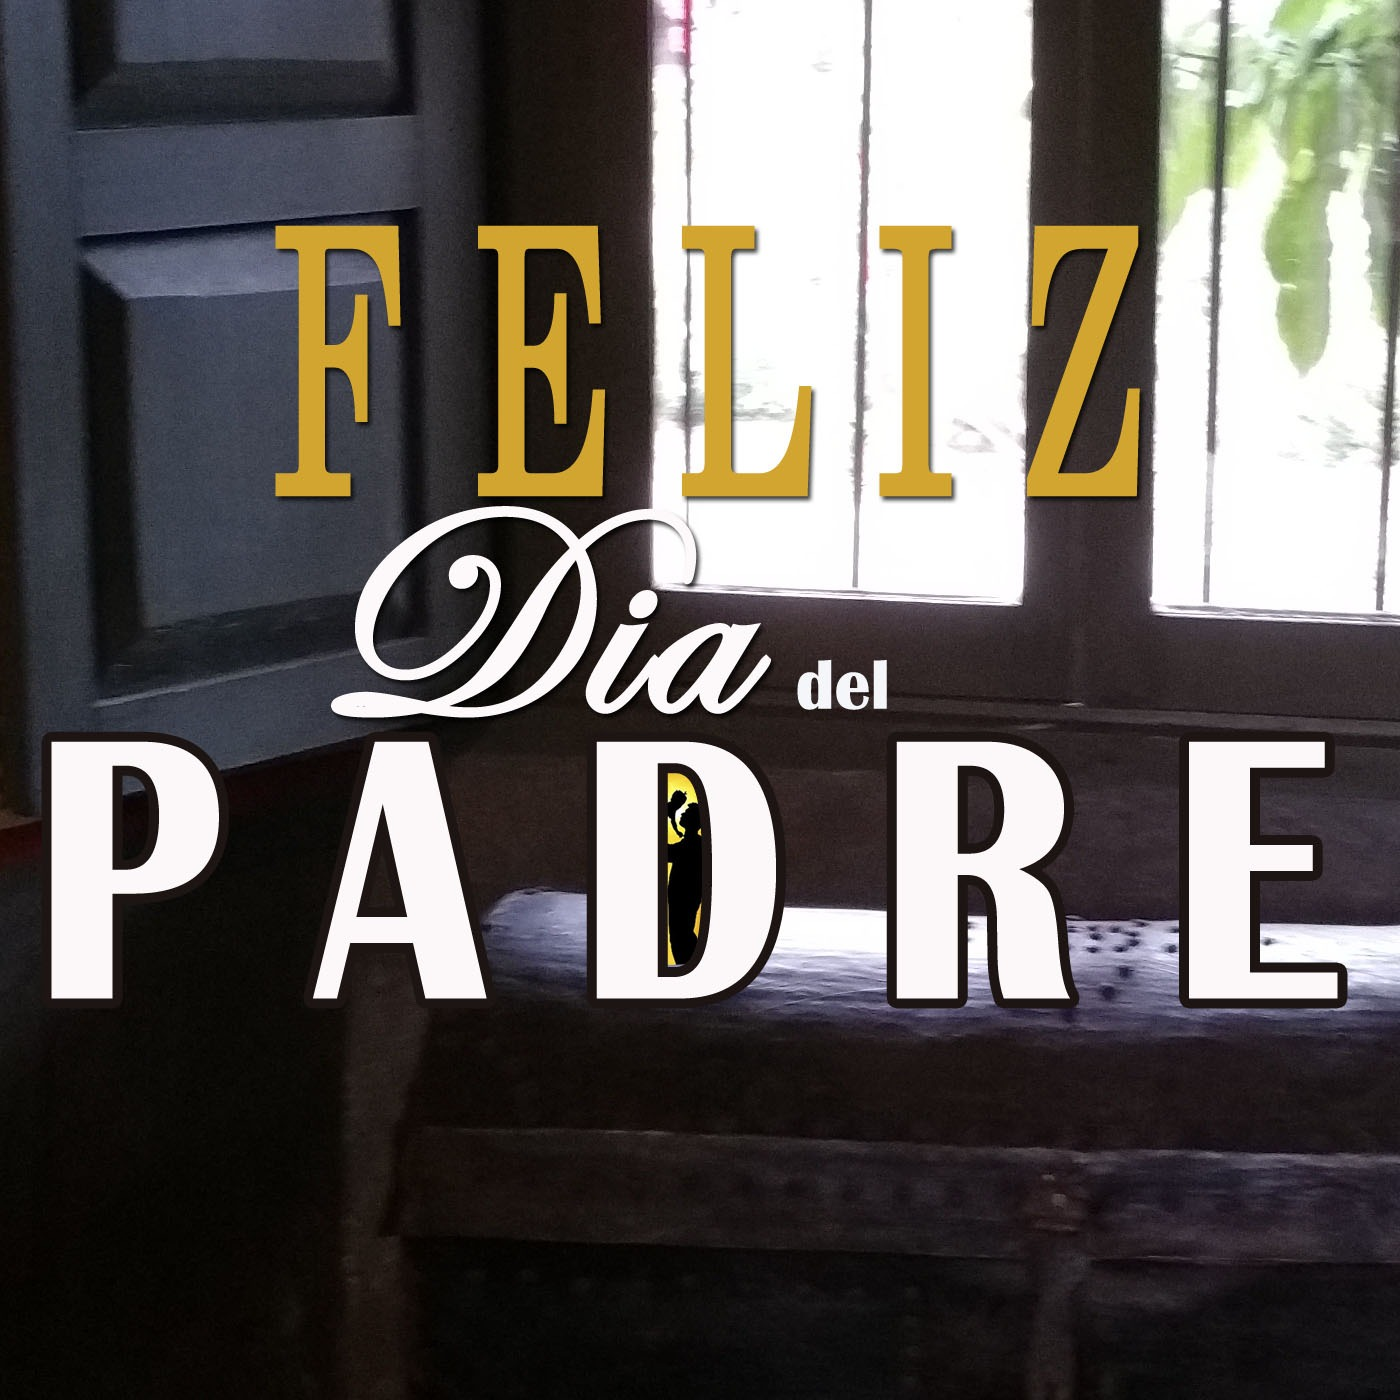 feliz dia del padre 2017 - photo #12